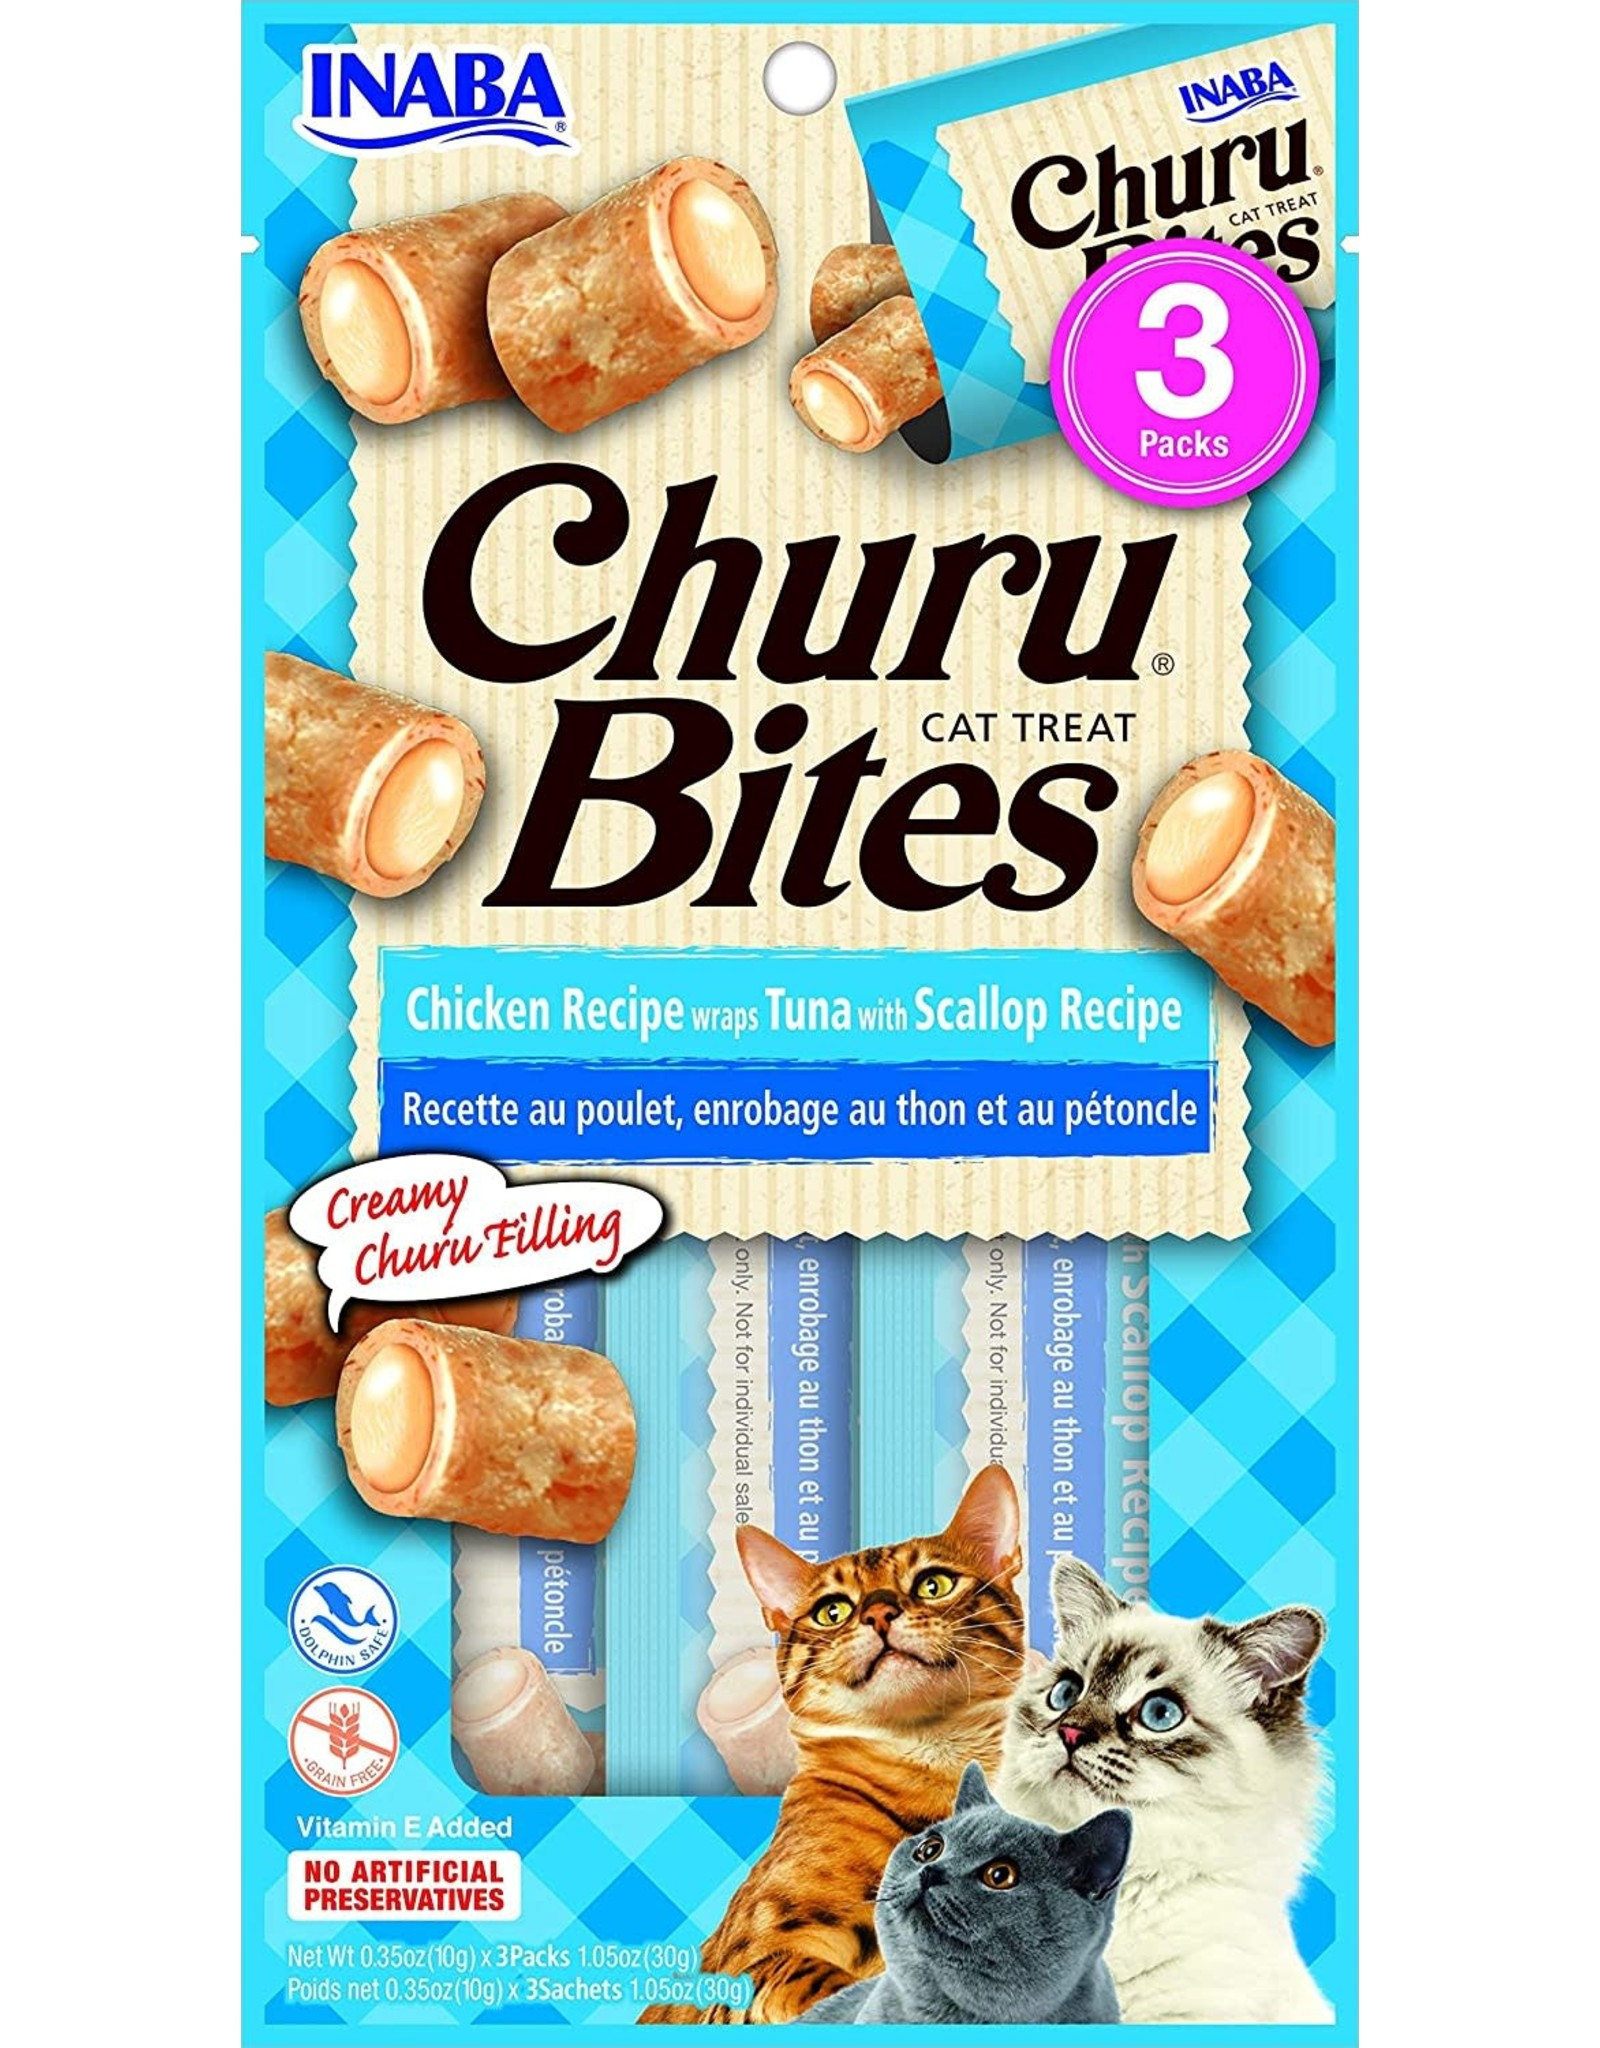 Inaba INABA CAT CHURU BITES CHICKEN RECIPE WRAPS TUNA WITH SCALLOP RECIPE 3-COUNT